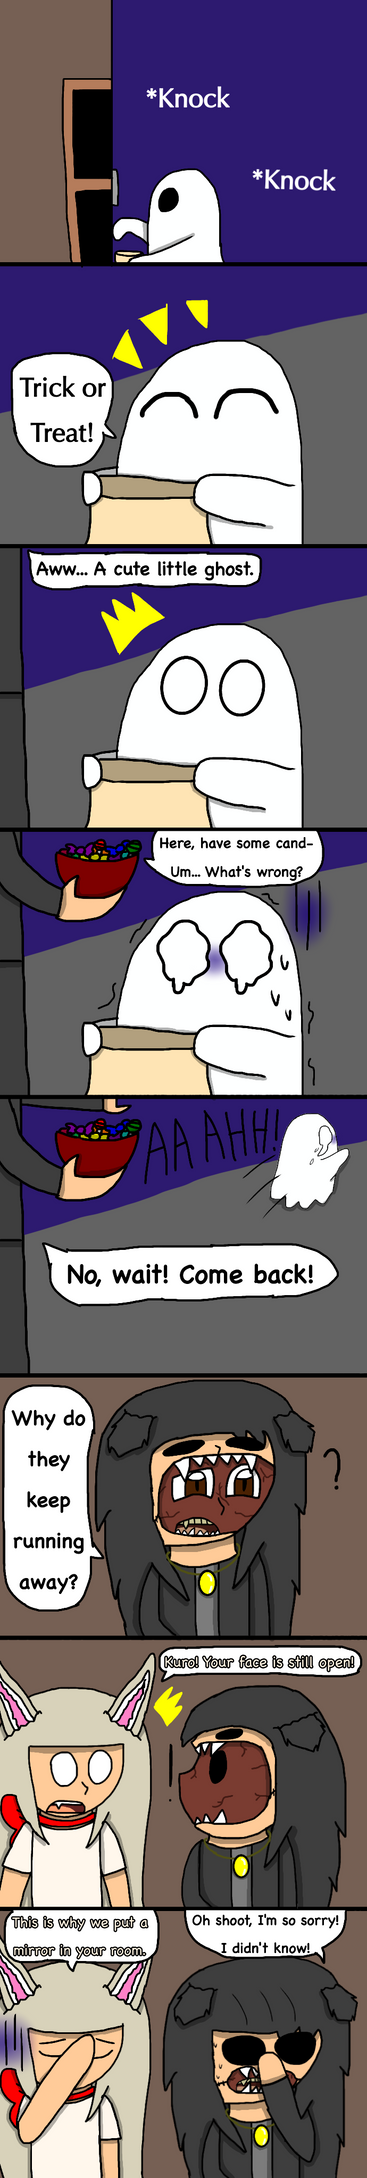 FNAF 0 - Face 'Reveal' (Halloween Special Comic) by Chibipie-Kagane